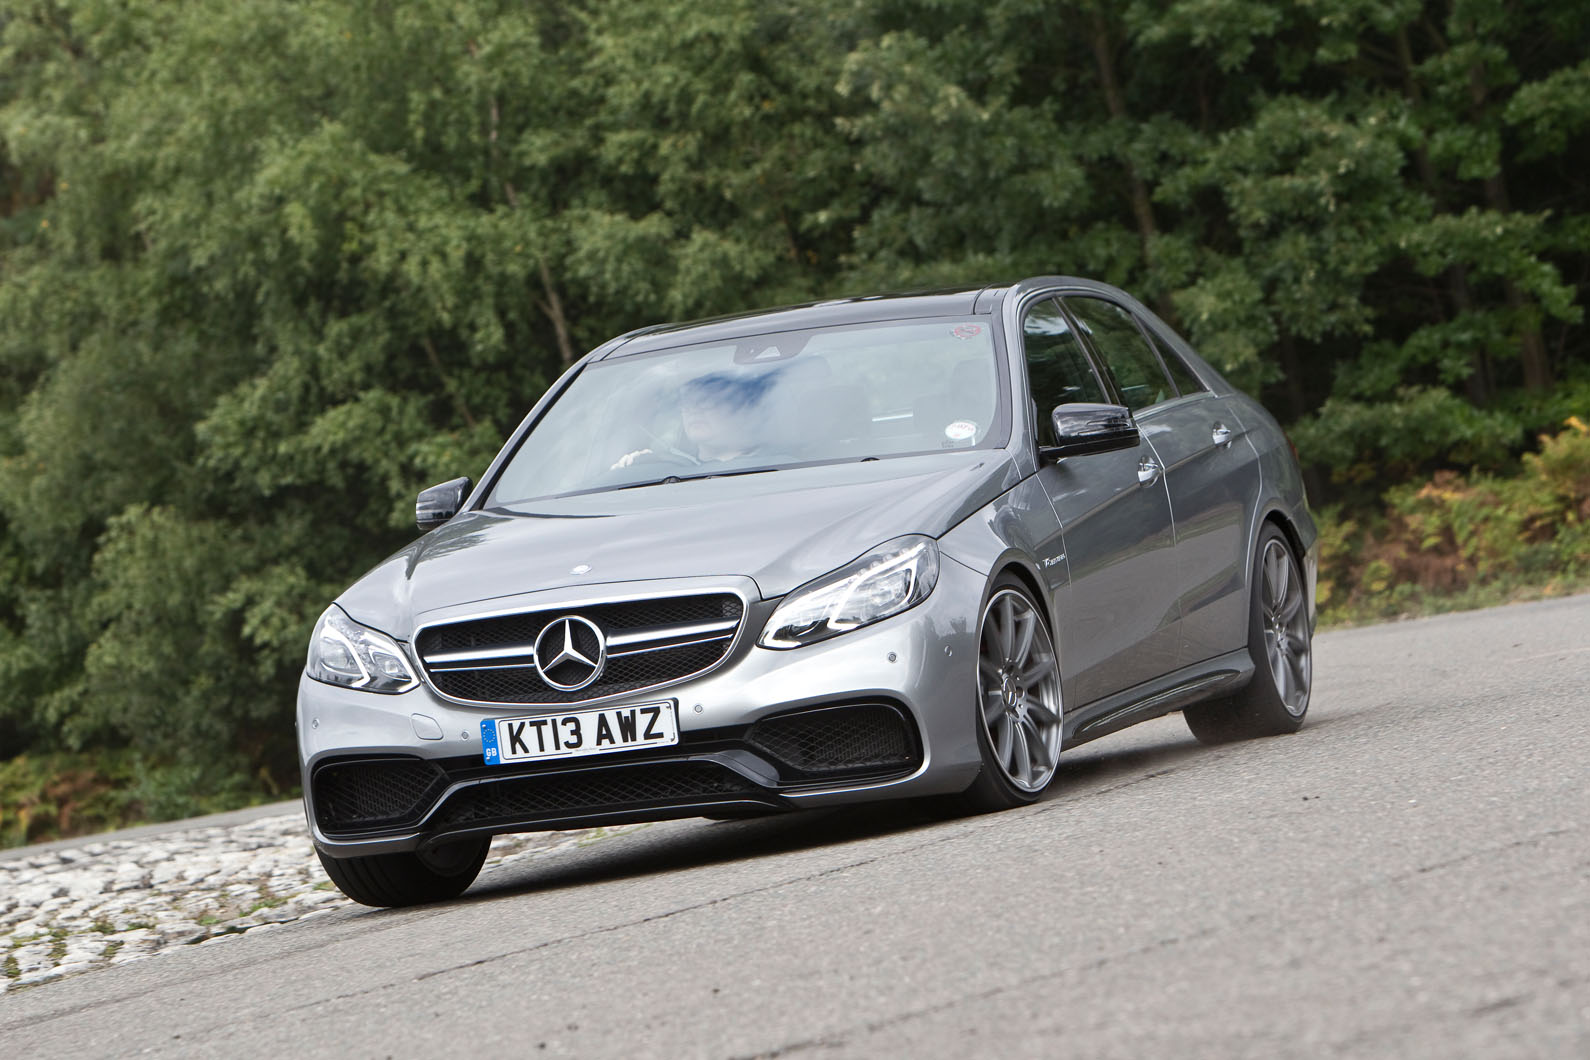 Mercedes benz e63 amg review autocar for Mercedes benz e63 amg price